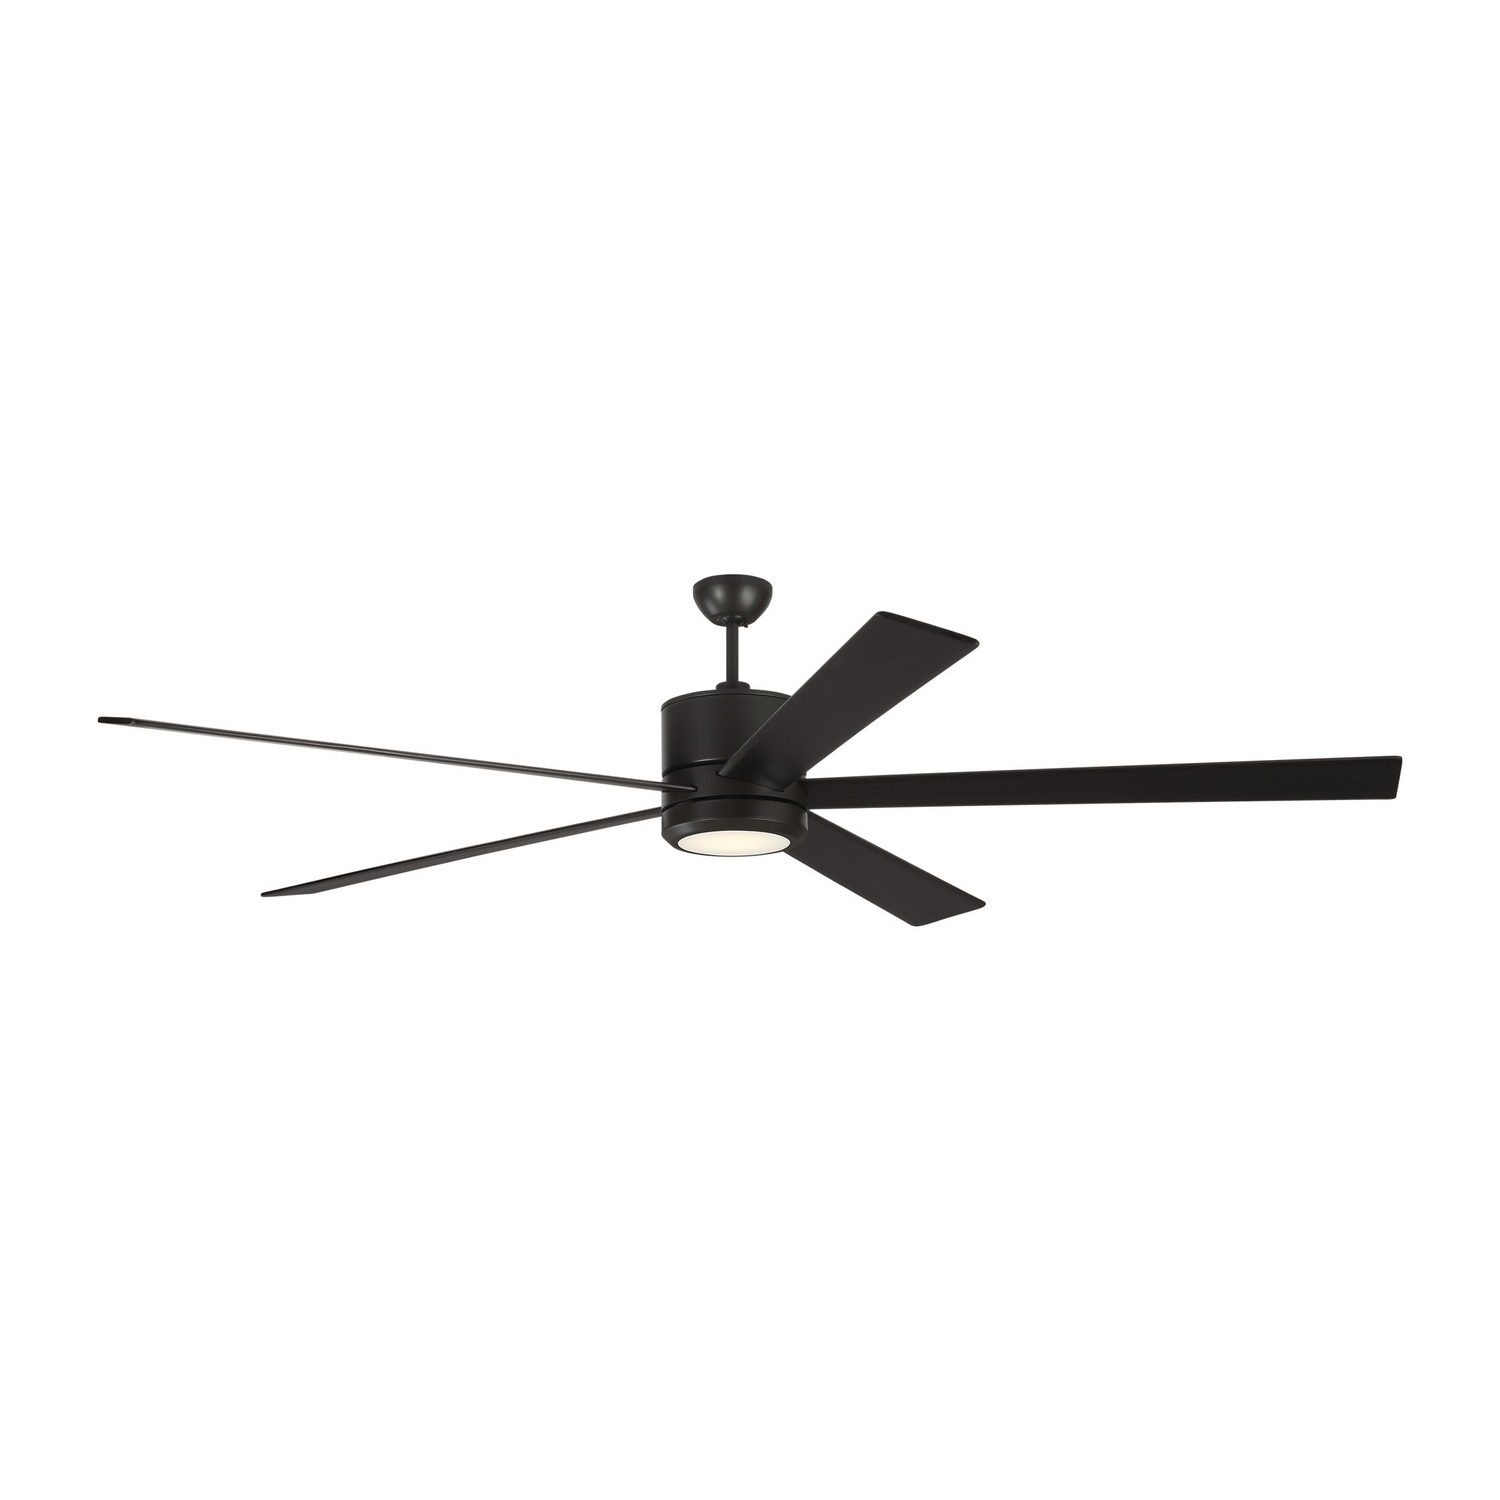 84 inchCeiling Fan from the Vision 84 collection by Monte Carlo 5VMR84OZD